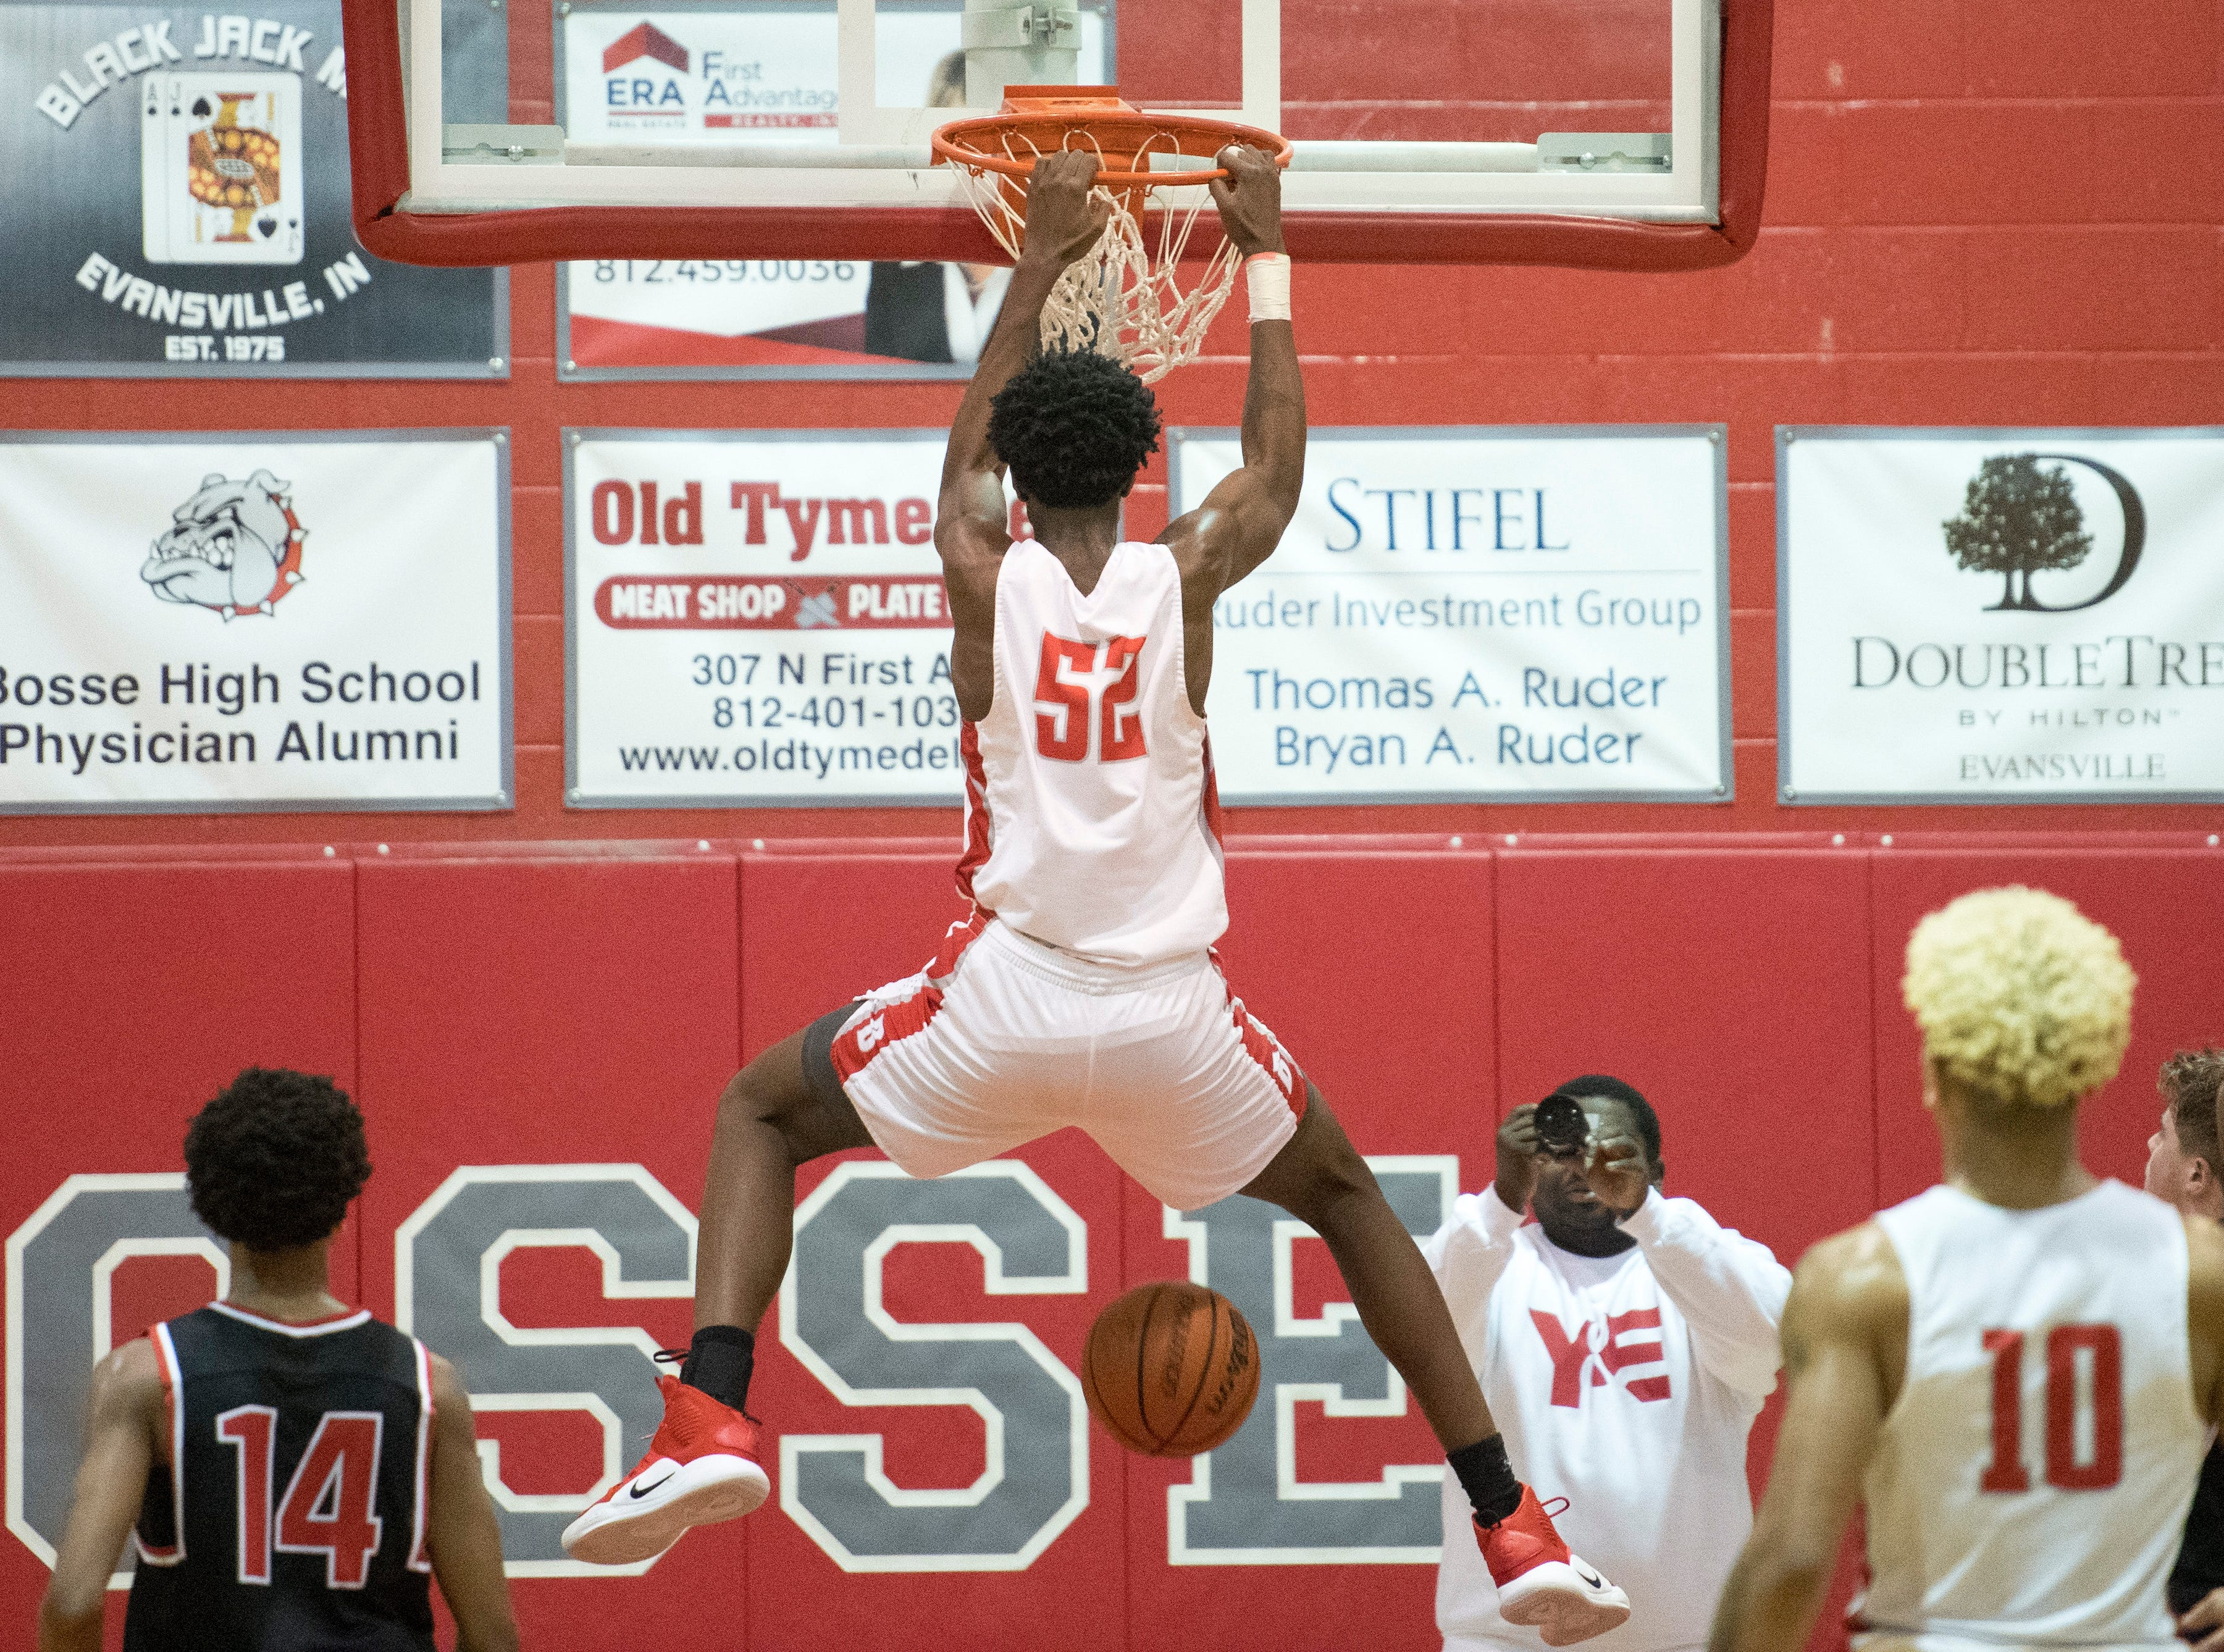 Bosse's Kiyron Powell (52) hangs from the rim after dunking the ball during the Harrison vs Bosse game at Bosse High School Tuesday, Feb. 12, 2019. The Bosse Bulldogs won 74-56.